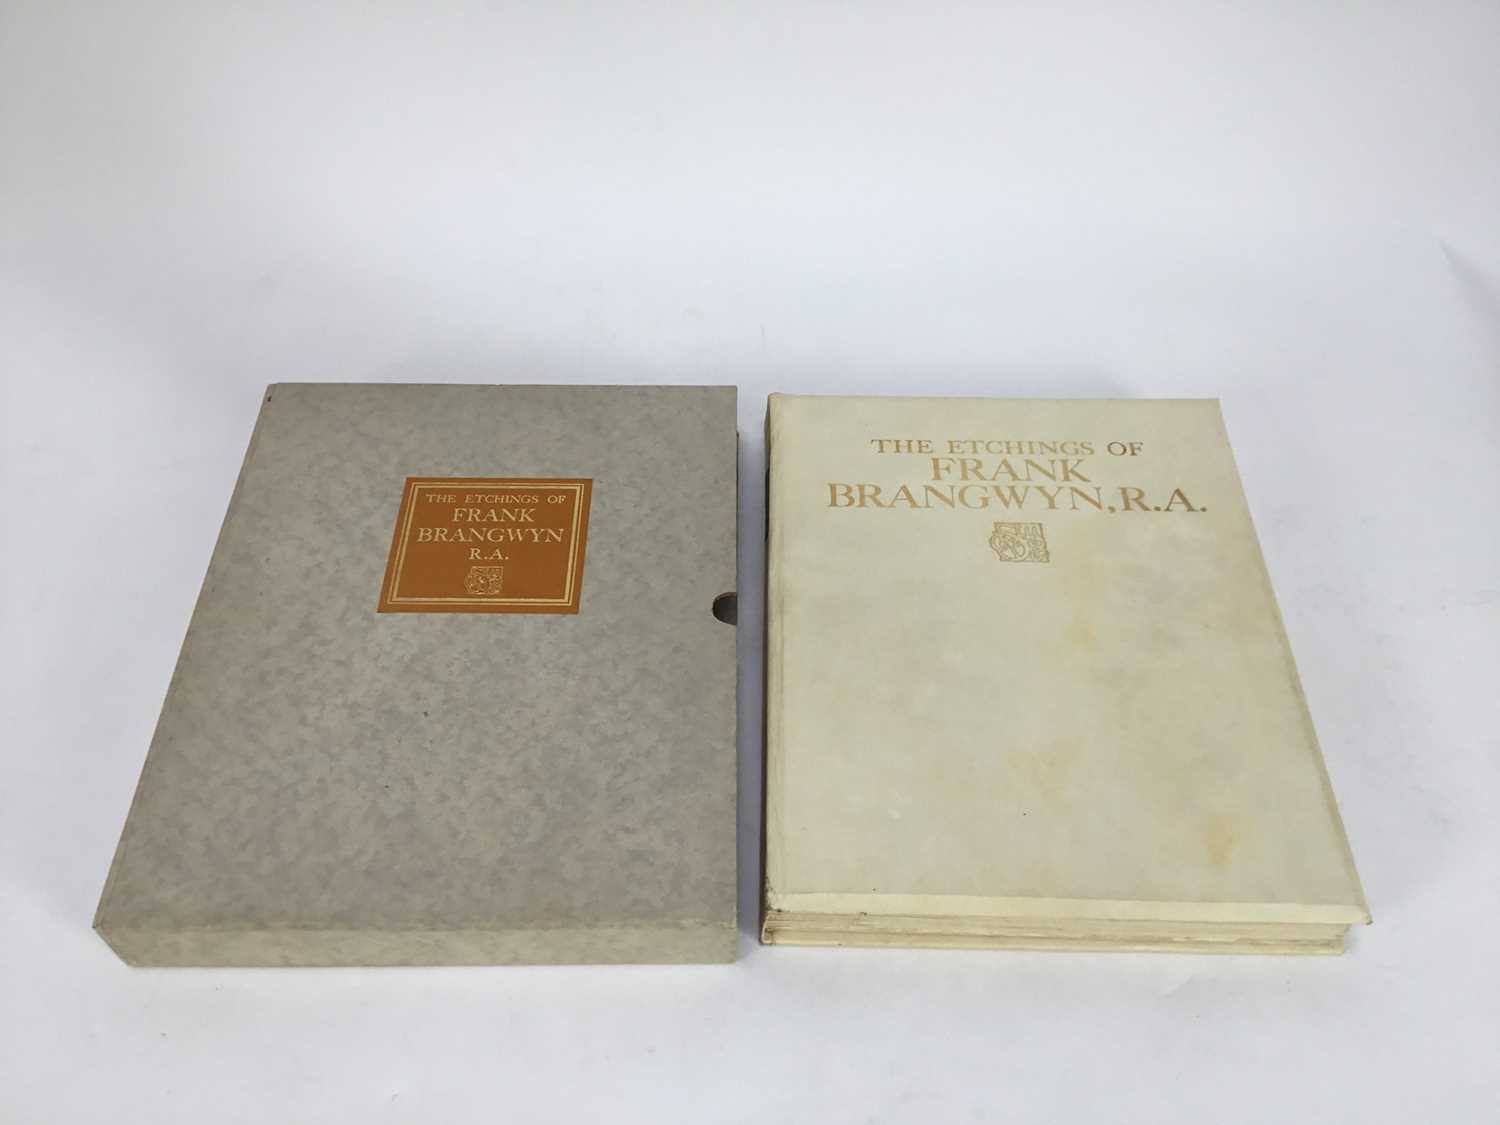 Book - The Etchings of Frank Brangwyn, R.A. A Catalogue Raisonne By W. Gaunt, limited edition 10/125 - Image 2 of 8